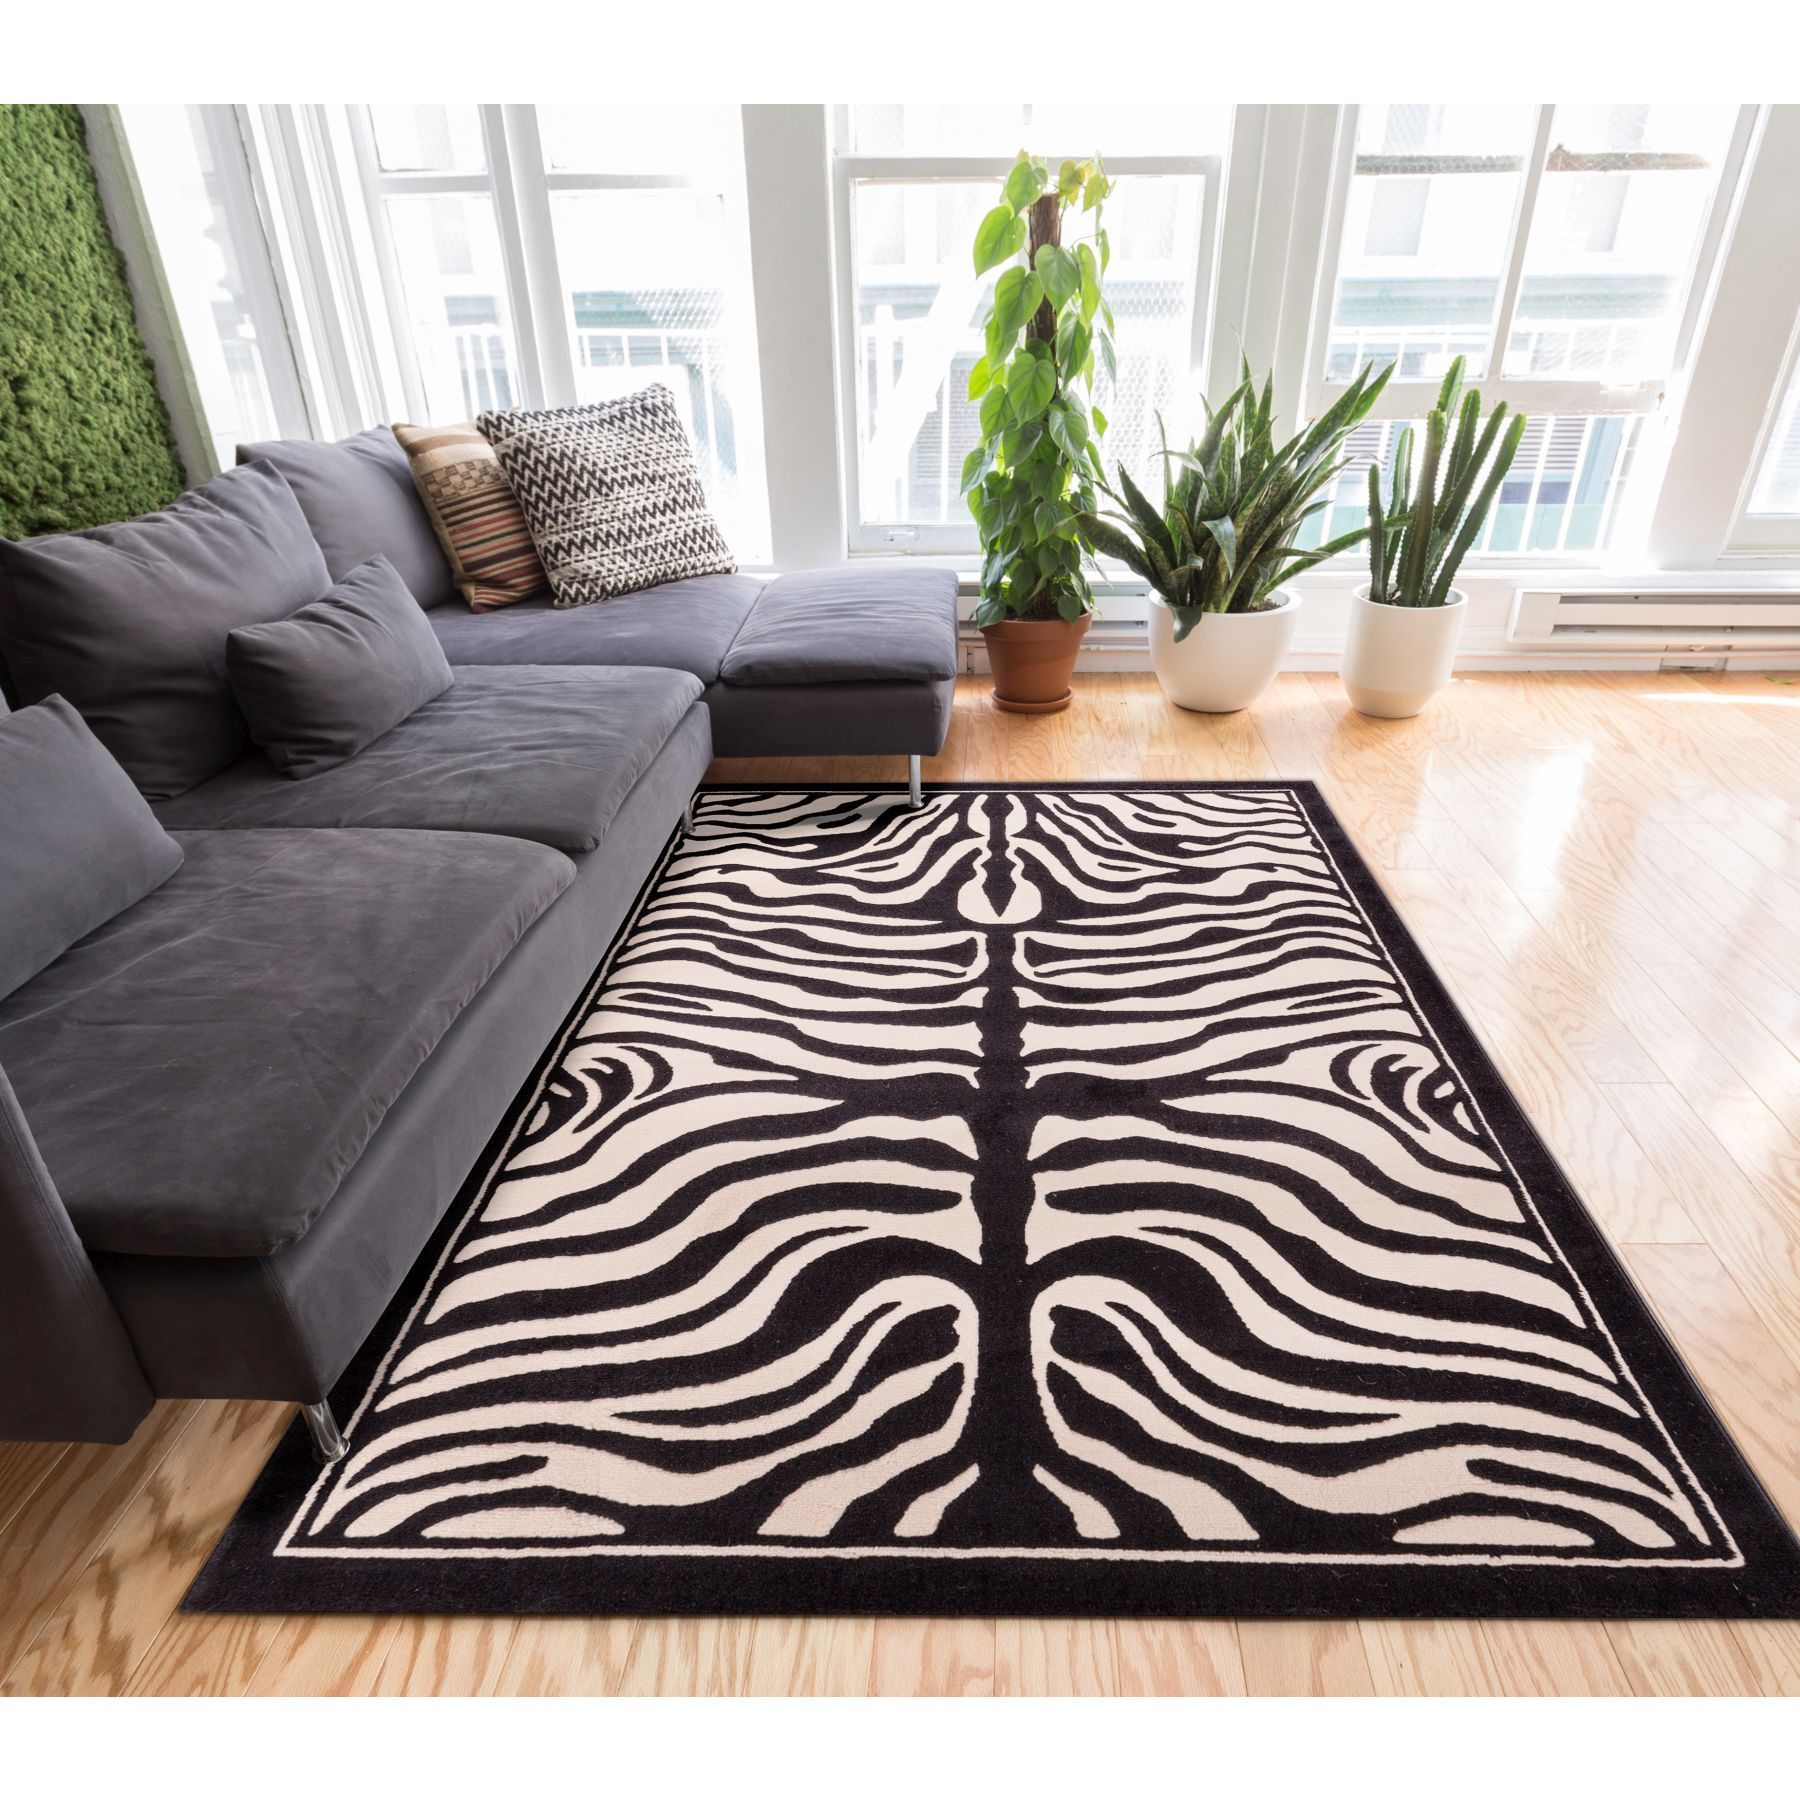 Well Woven Zebra Animal Print Black Beige Modern Area Rug - 93 x 126 (Ivory)